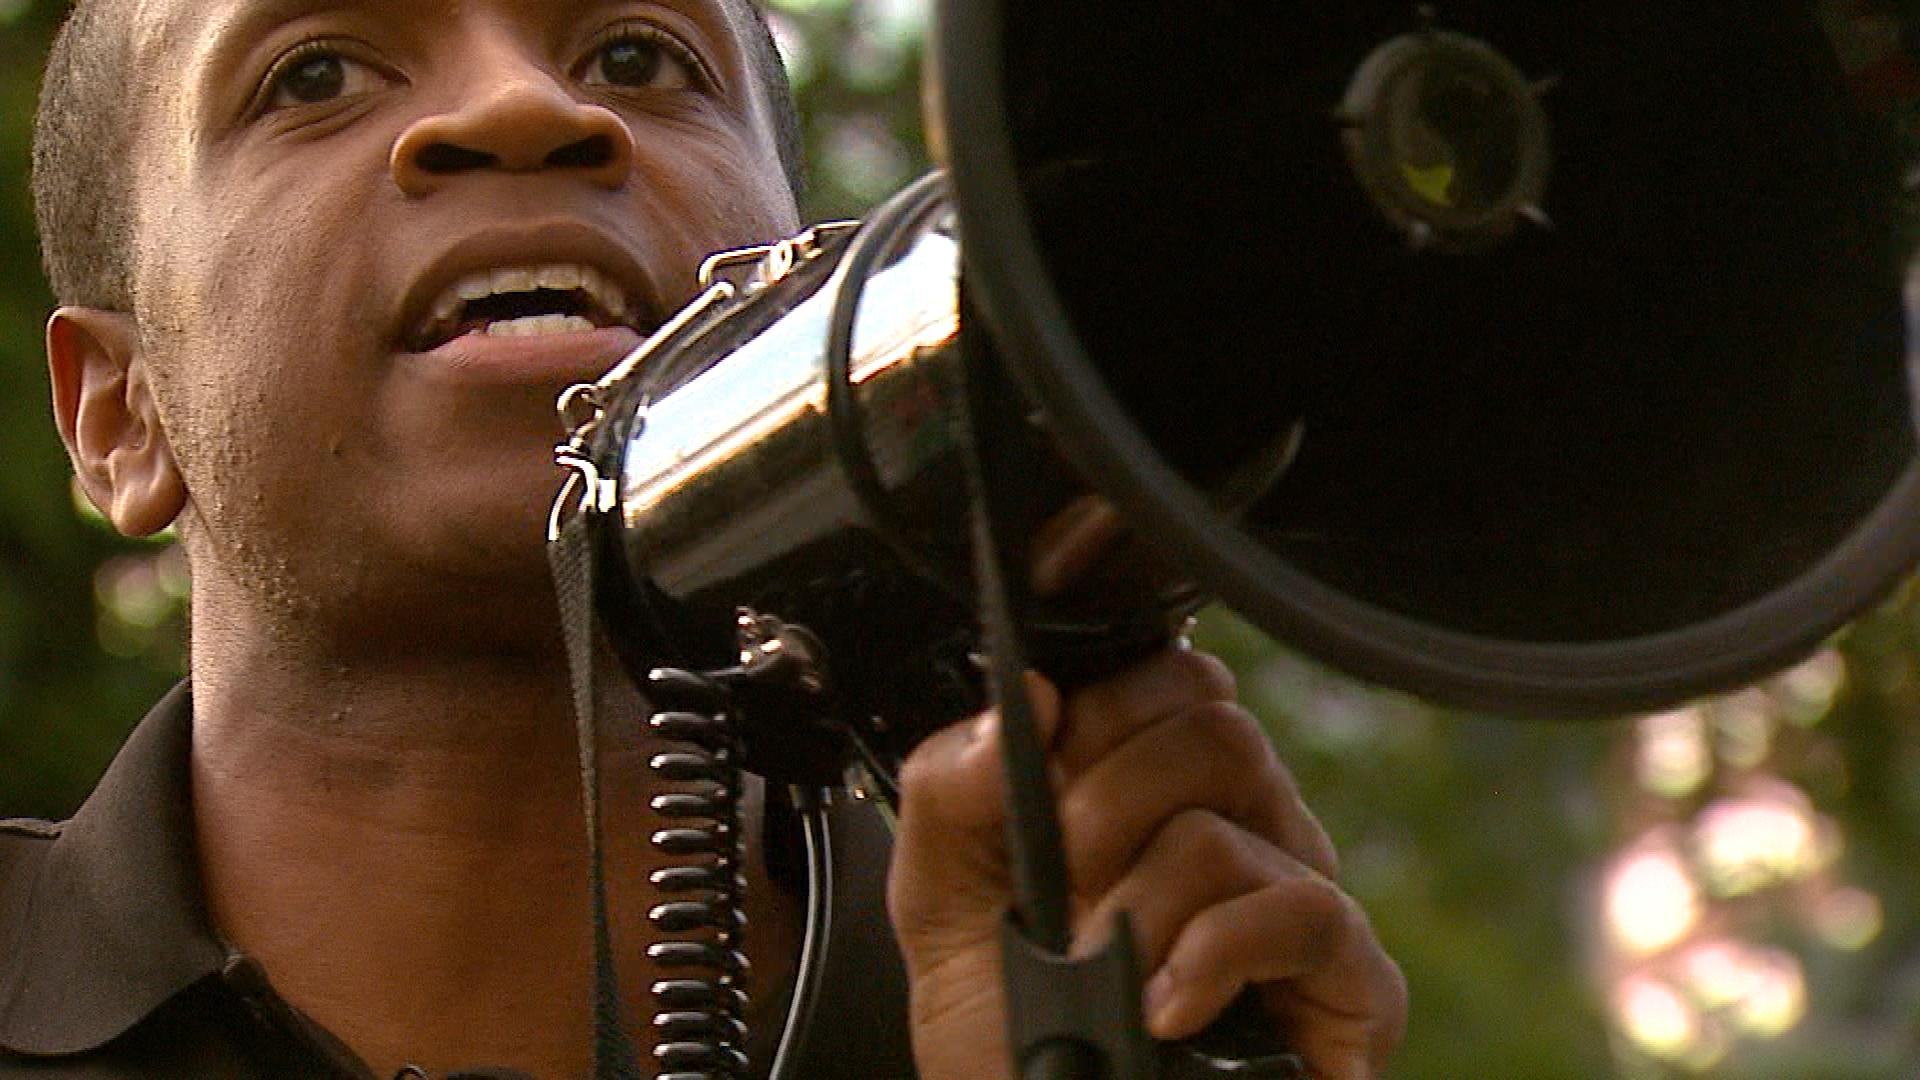 Kenny Wiley speaks through a megaphone at the rally. (credit: CBS)